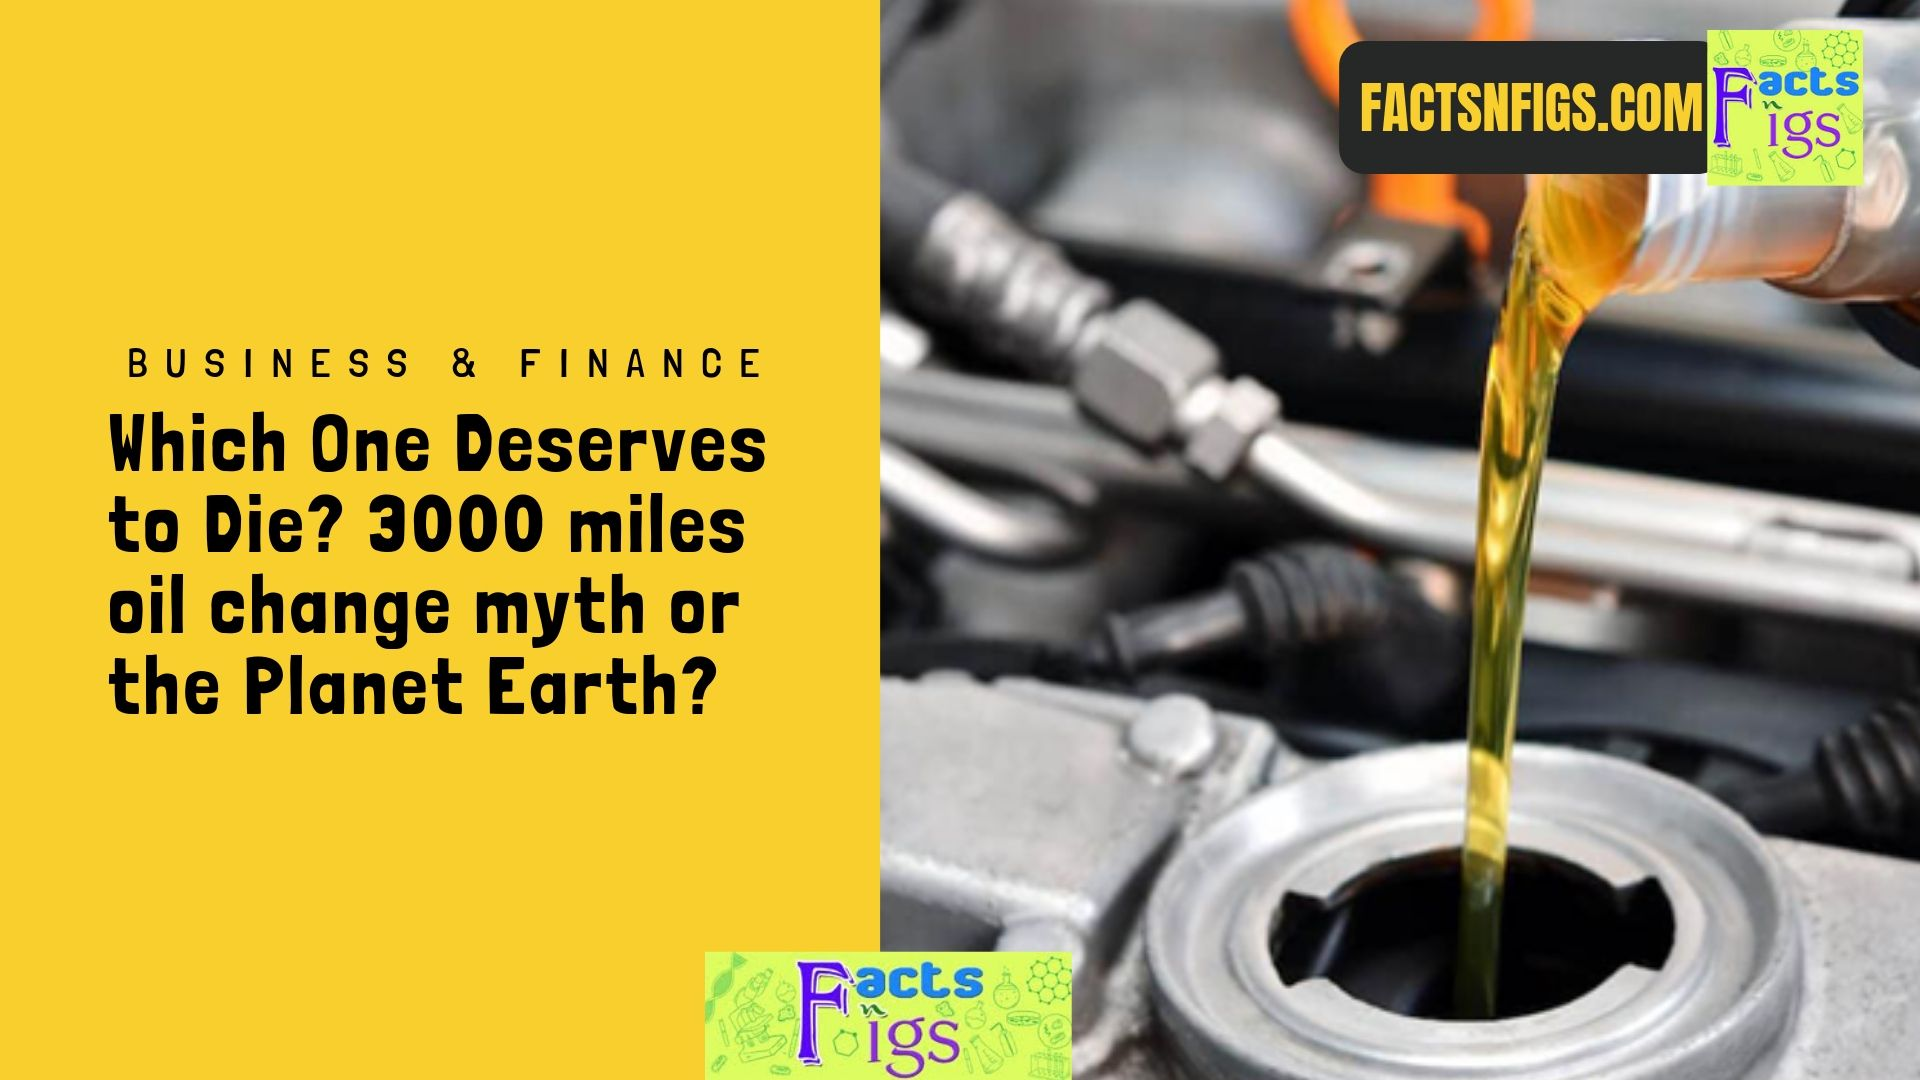 Which One Deserves to Die? 3000 miles oil change myth or the Planet Earth?